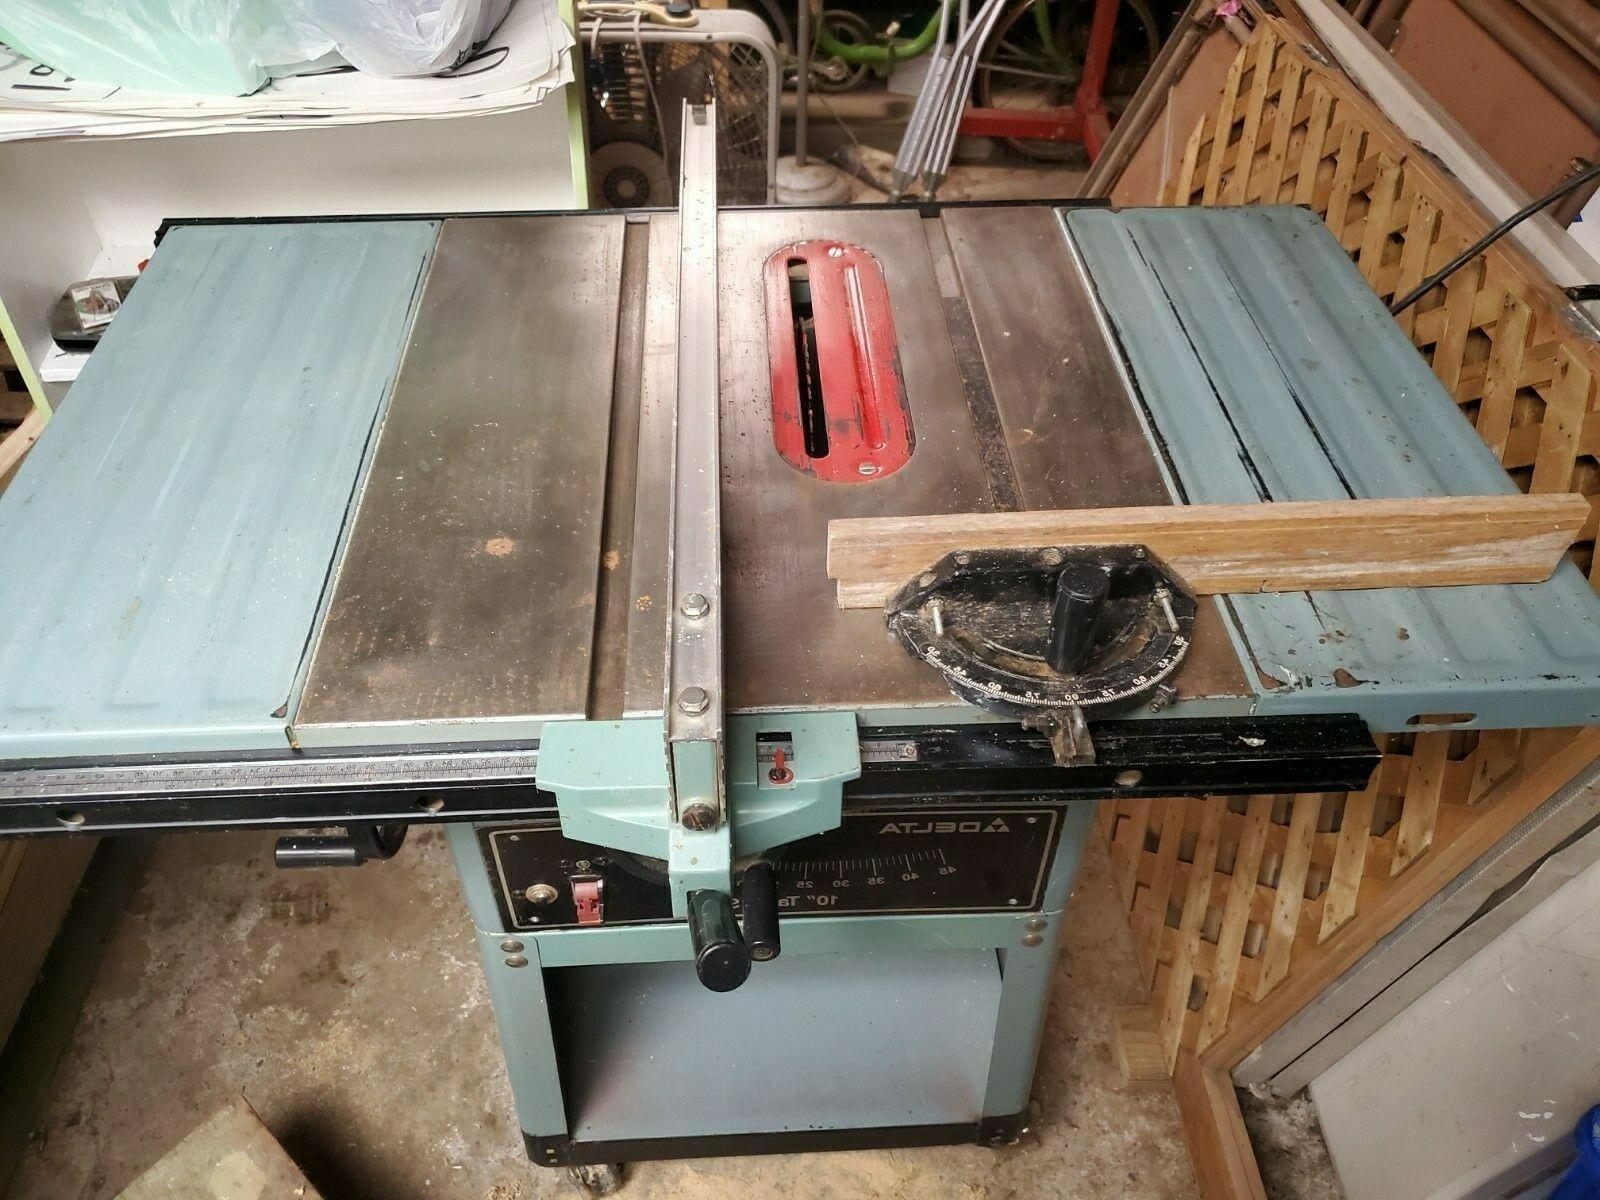 Delta 34-670 table saw